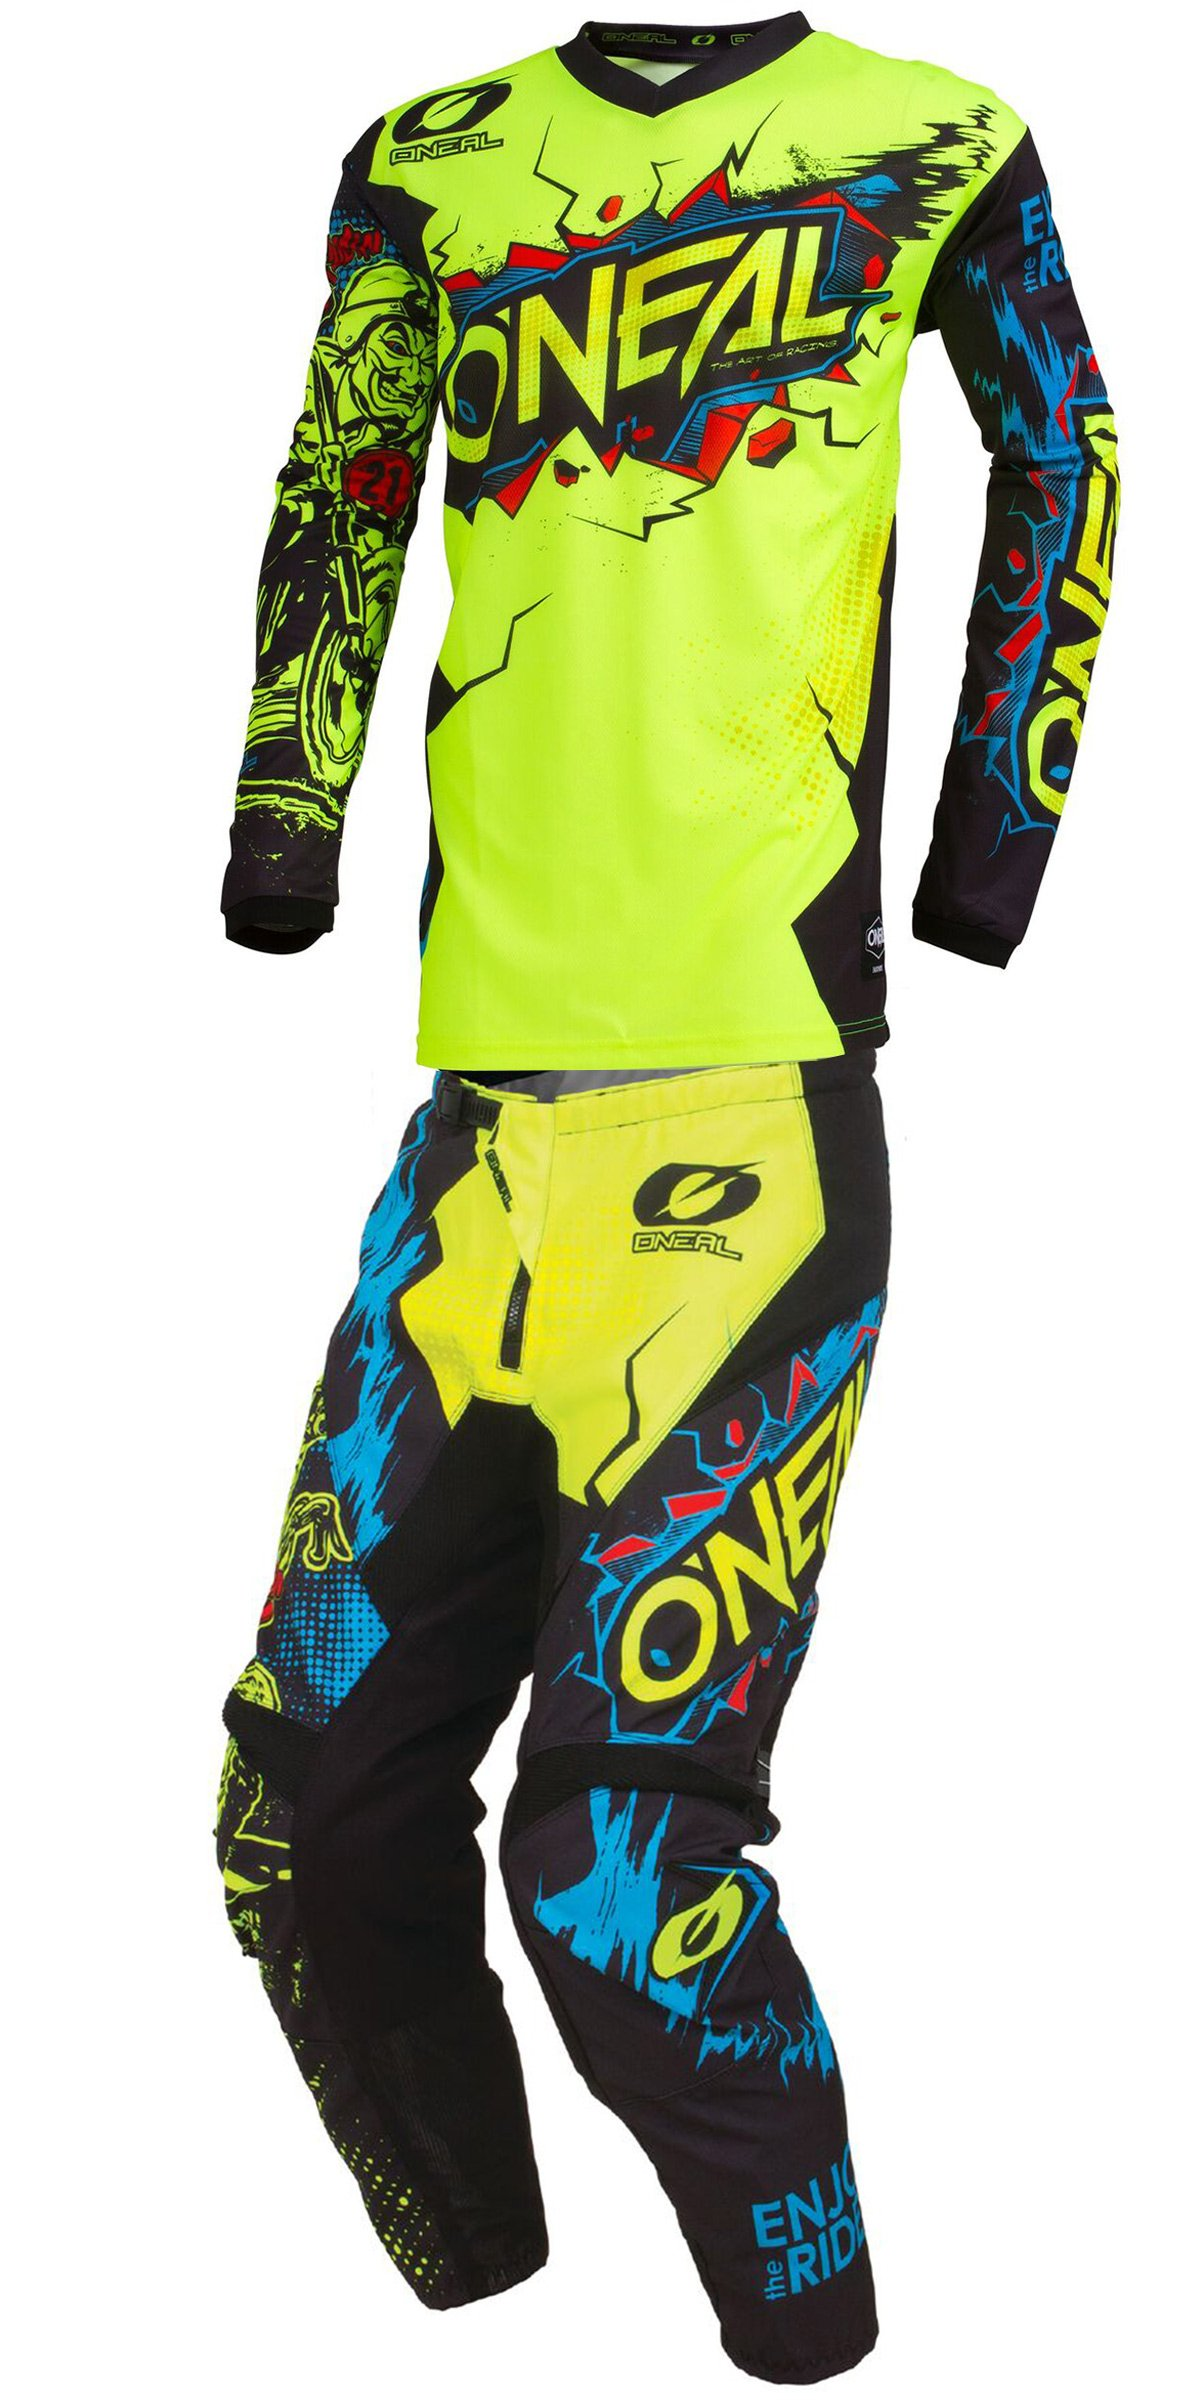 O'Neal - 2019 Element Villain (Youth NEON Yellow Y-Large/Y-28W) MX Riding Gear Combo Set, Motocross Off-Road Dirt Bike Jersey & Pant